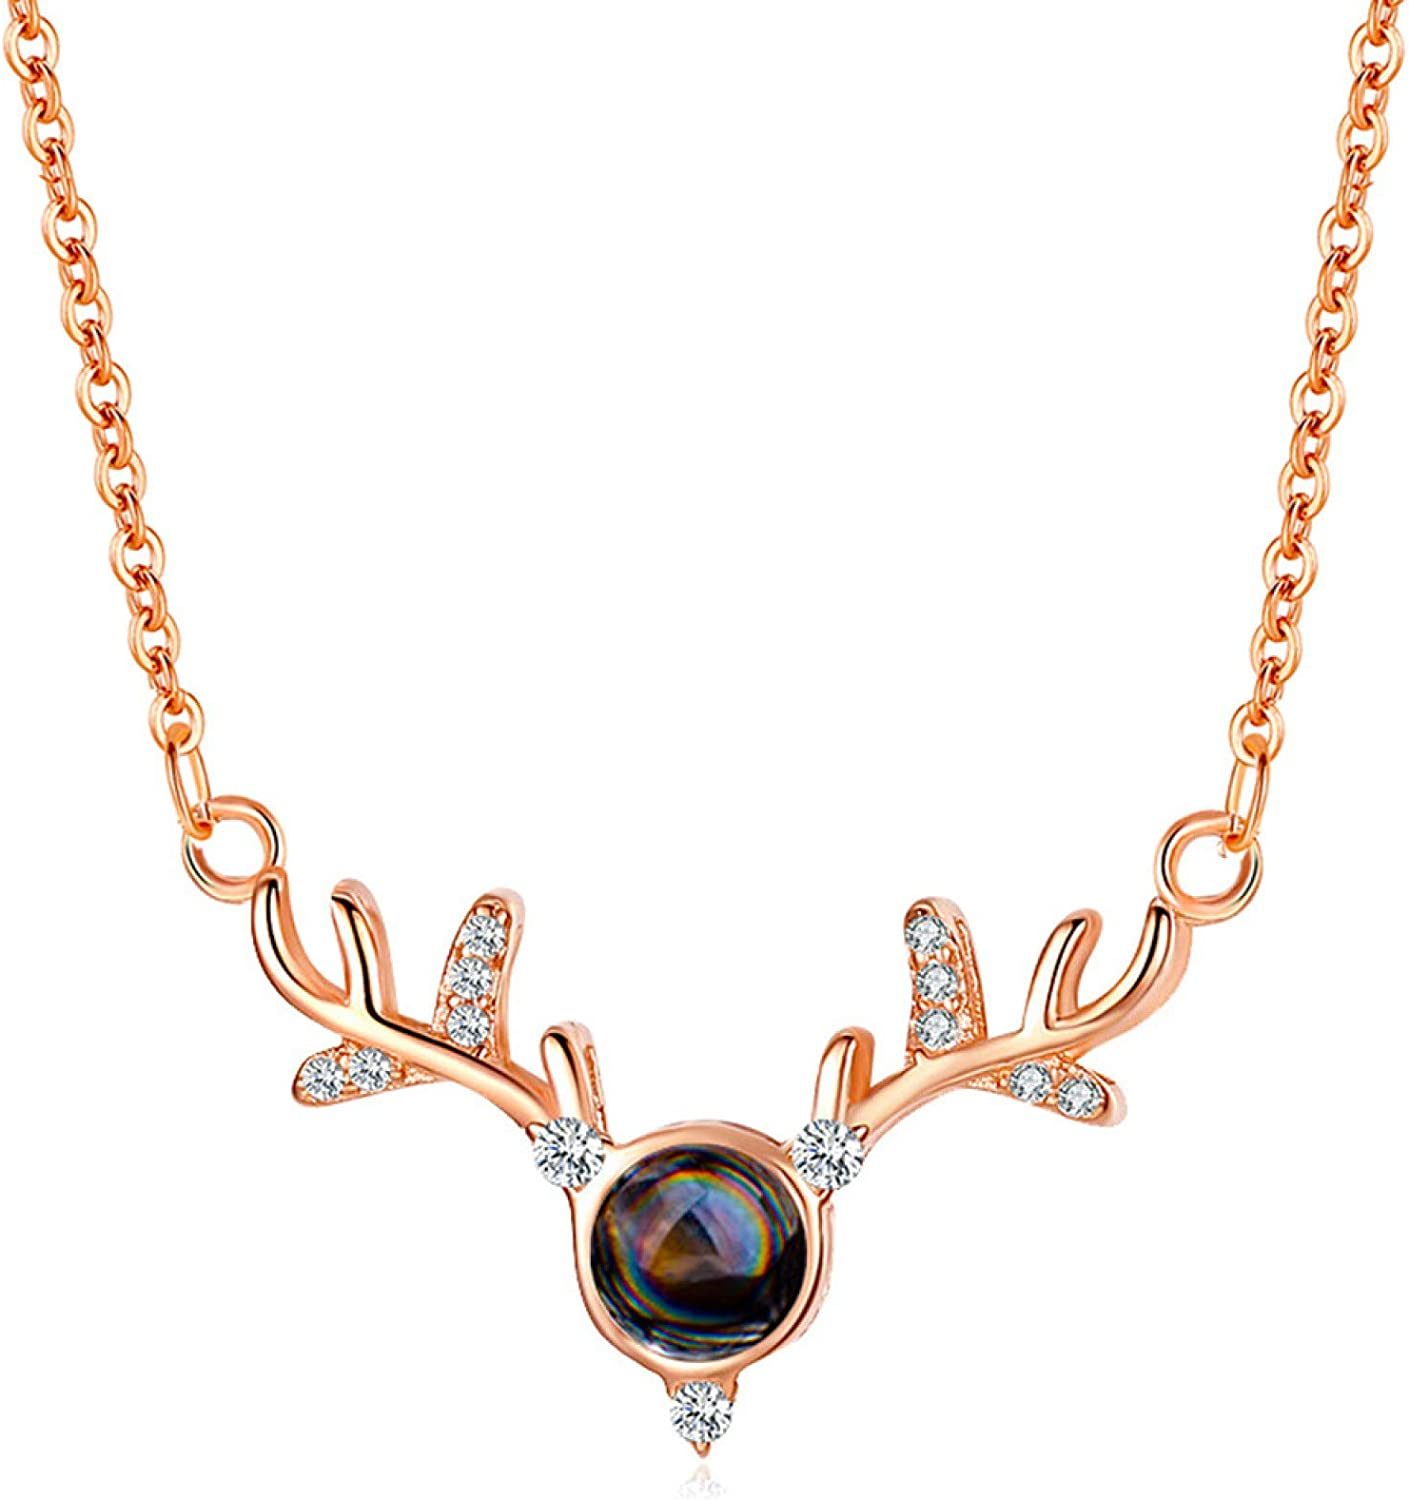 erDouckan Women Girl Fashion Summer Spring Jewerly Necklace Female Antler Shaped Projection Clavicle Chain Pendant Choker Necklace Jewelry